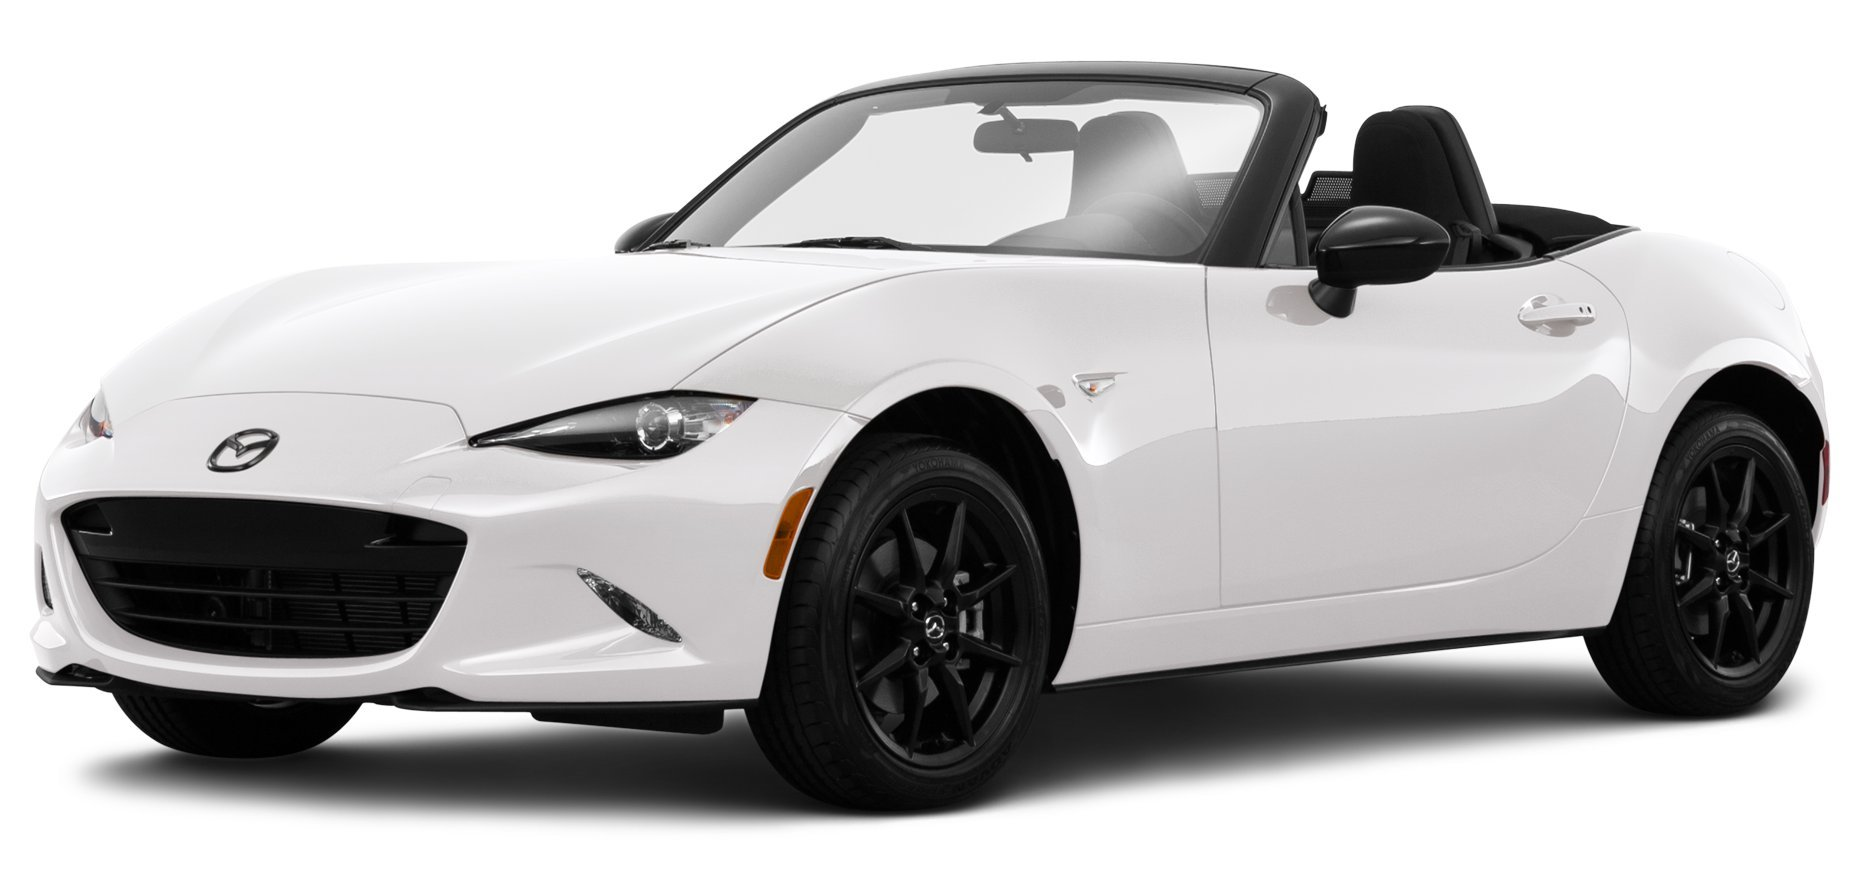 2016 mazda mx 5 miata reviews images and specs vehicles. Black Bedroom Furniture Sets. Home Design Ideas